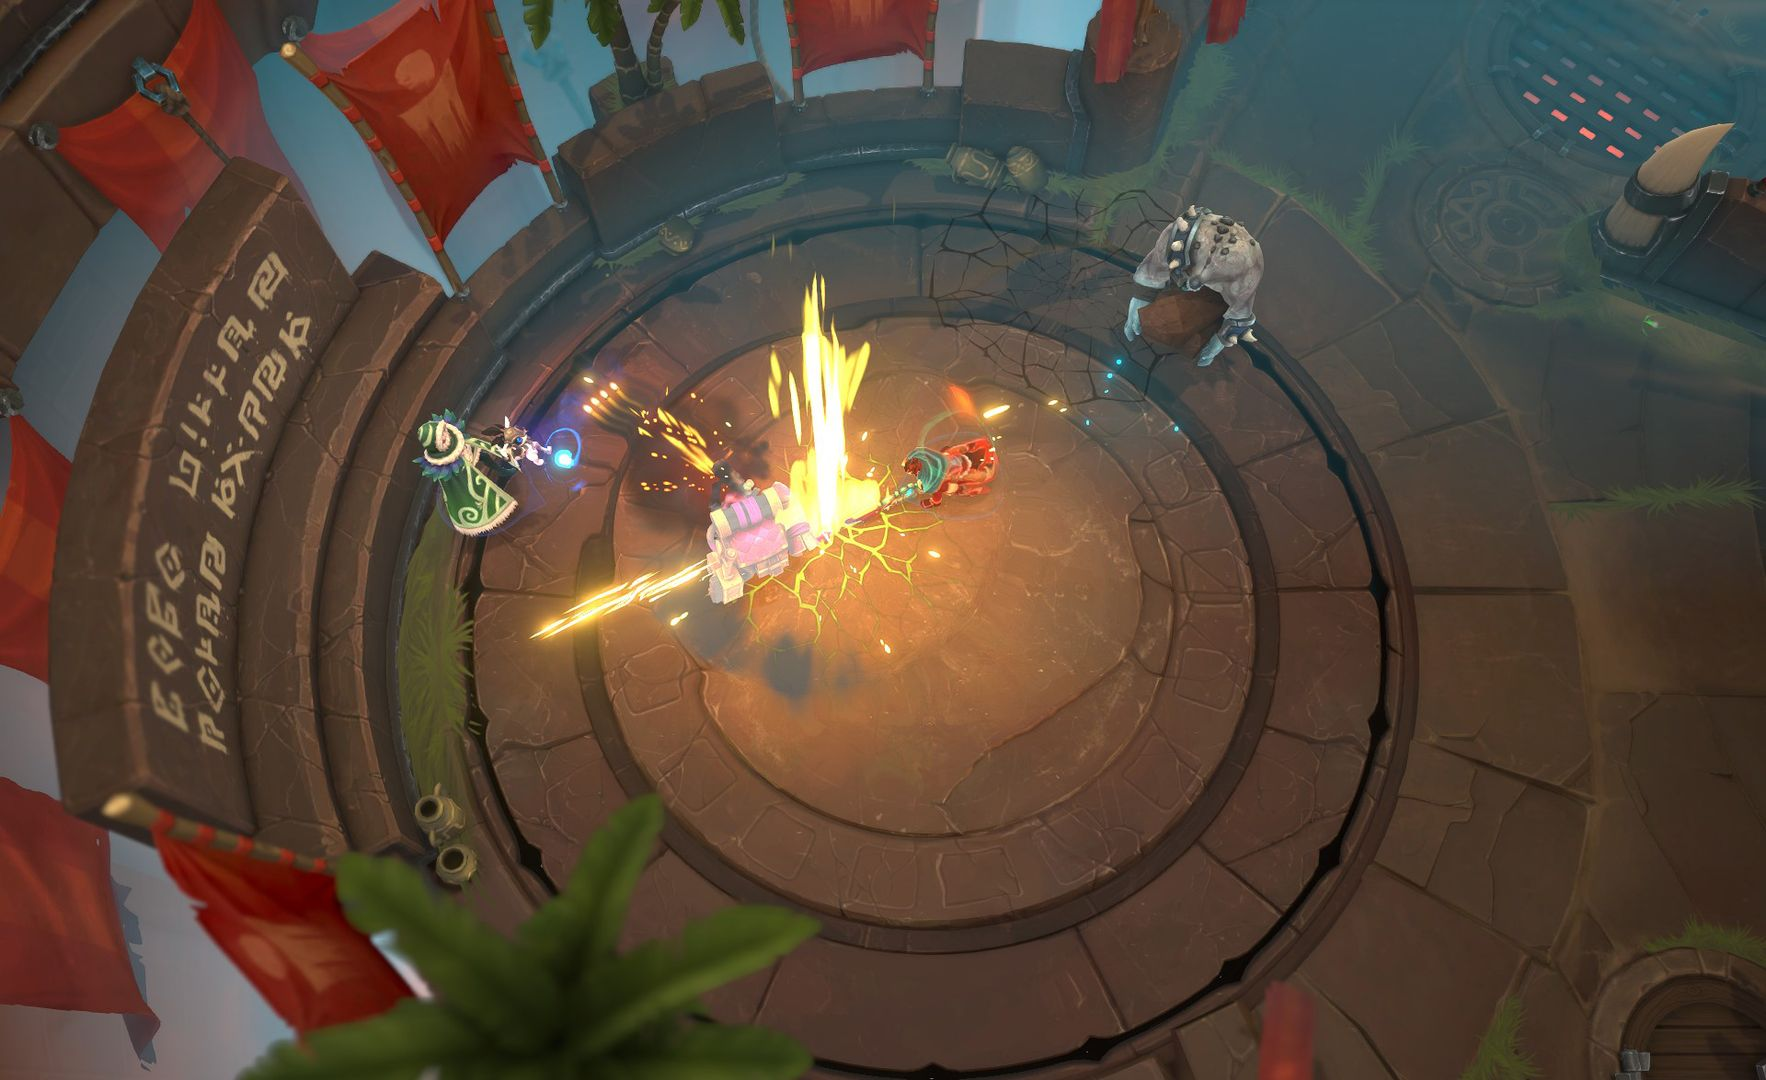 Arena battler Battlerite gets free to play launch date - Free week incoming